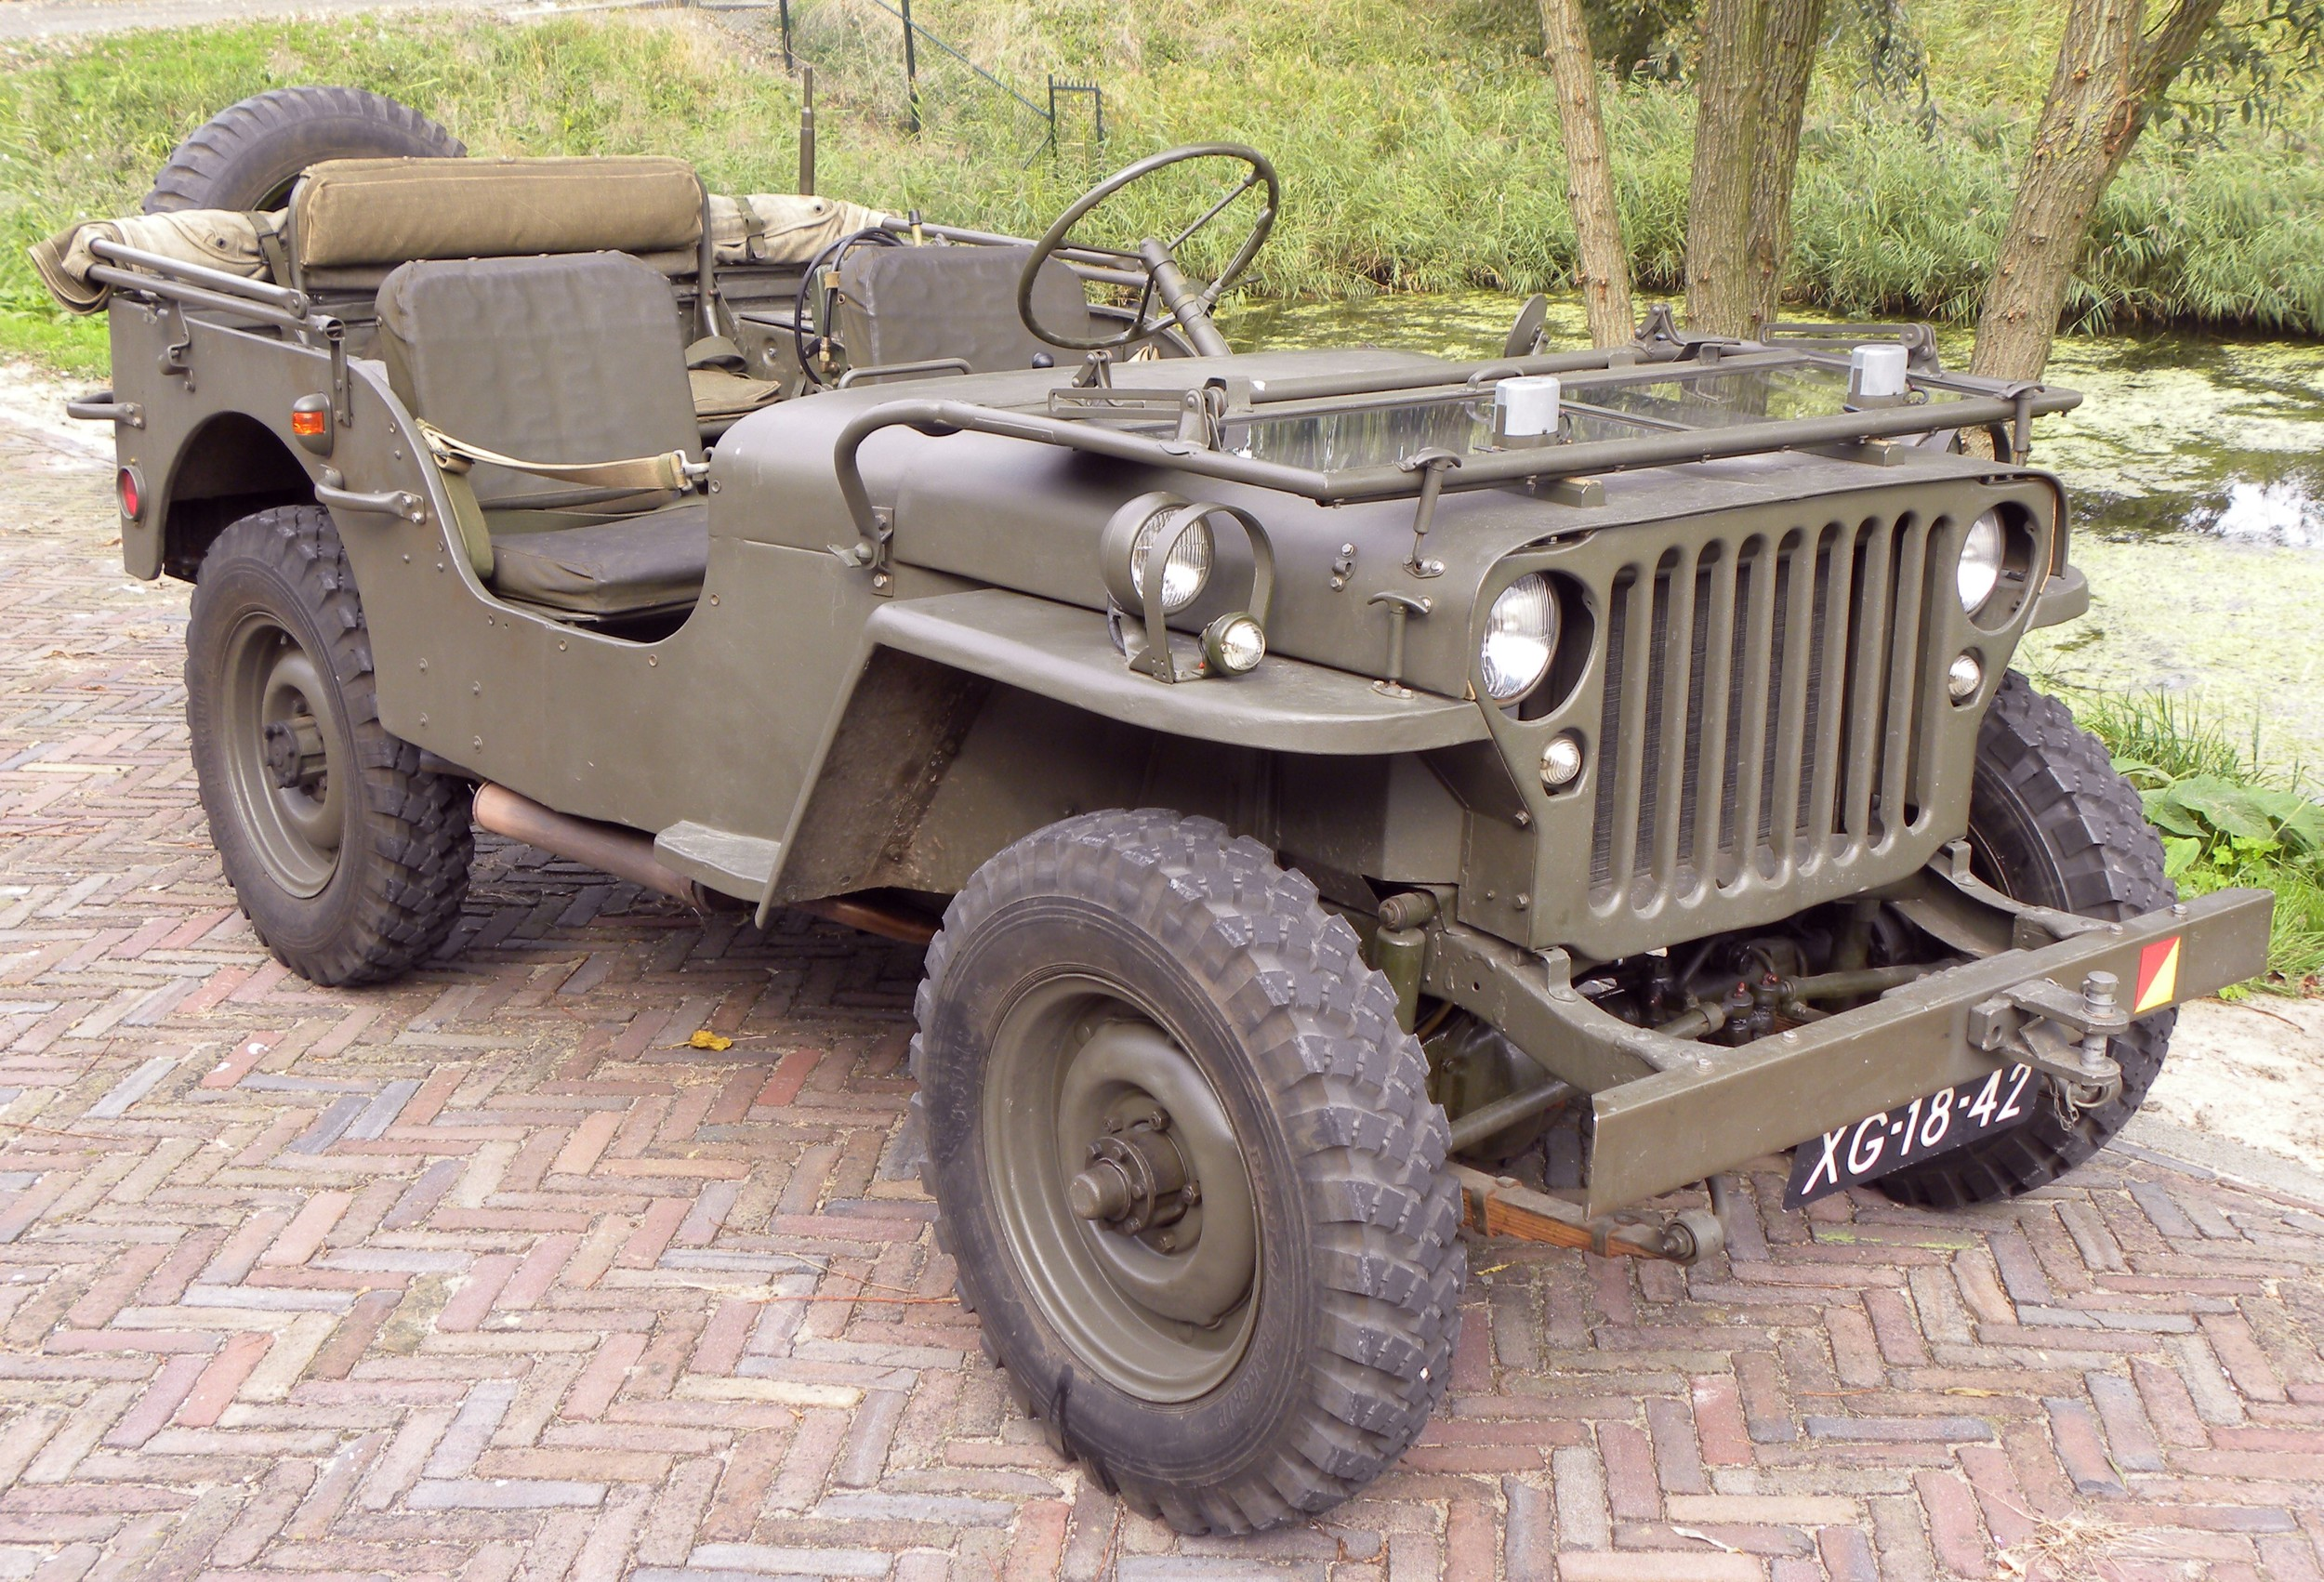 Image: Wikipedia, 1943 Willys Jeep